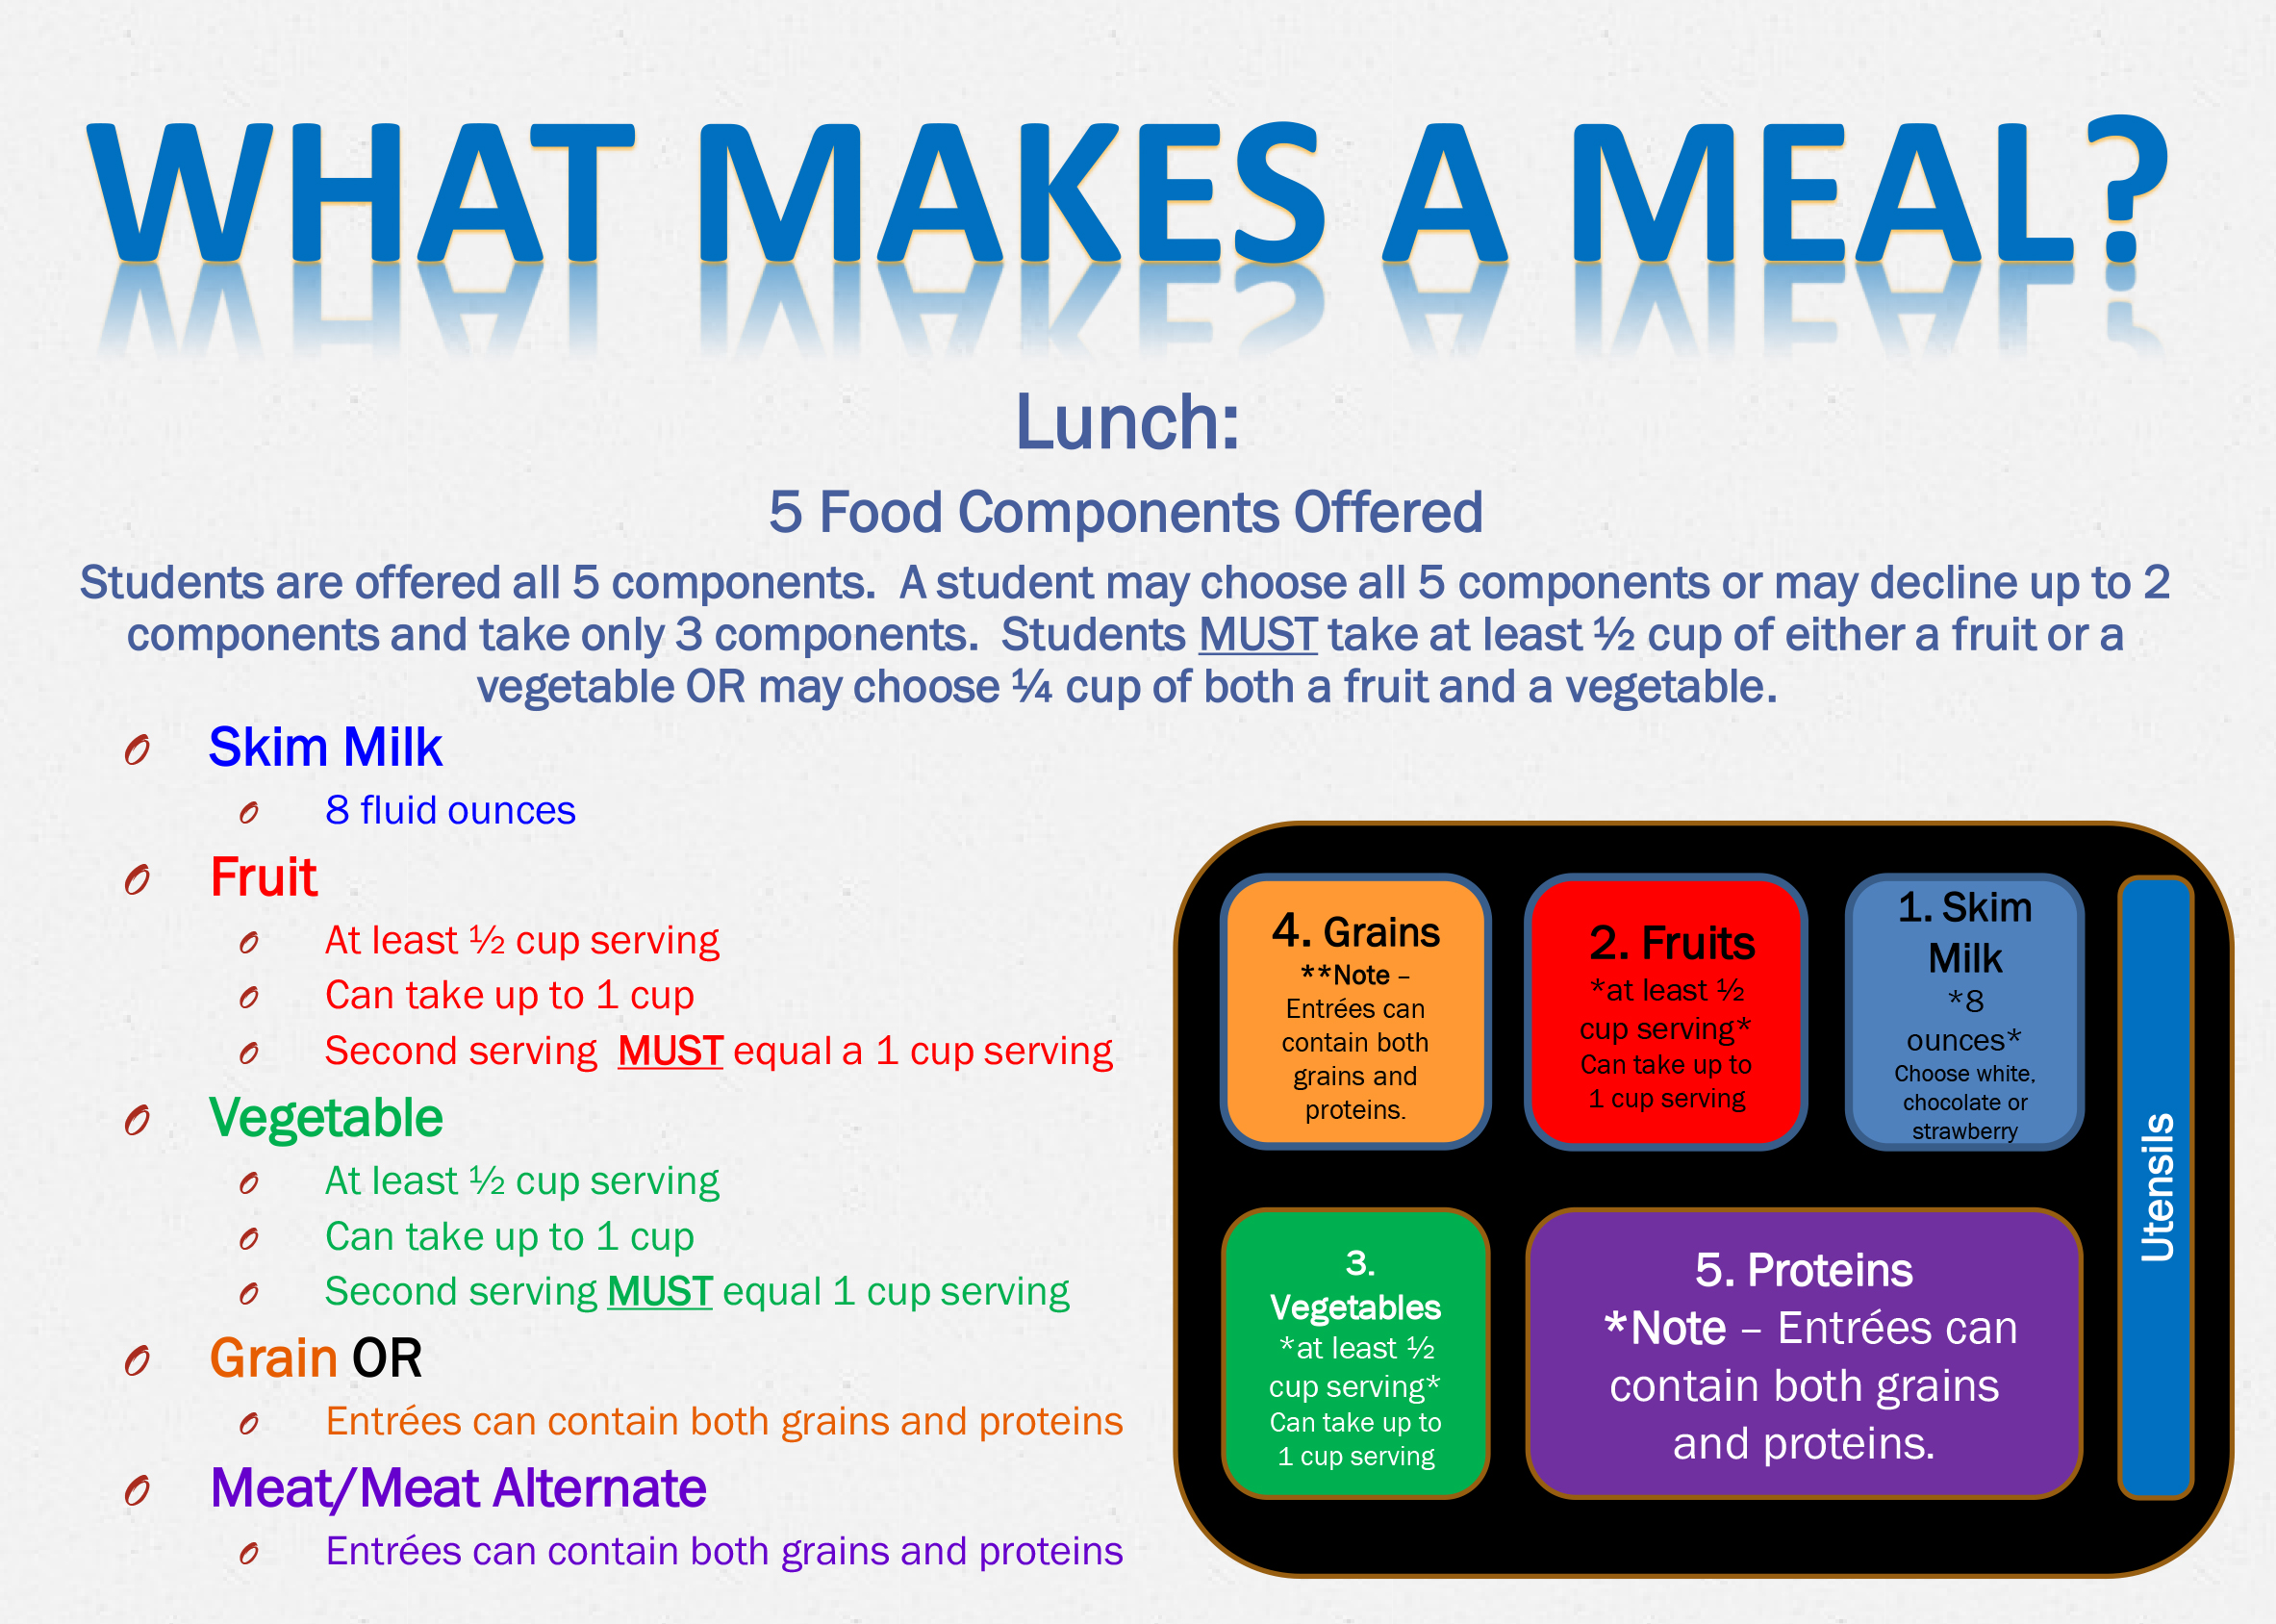 What Makes a Meal?